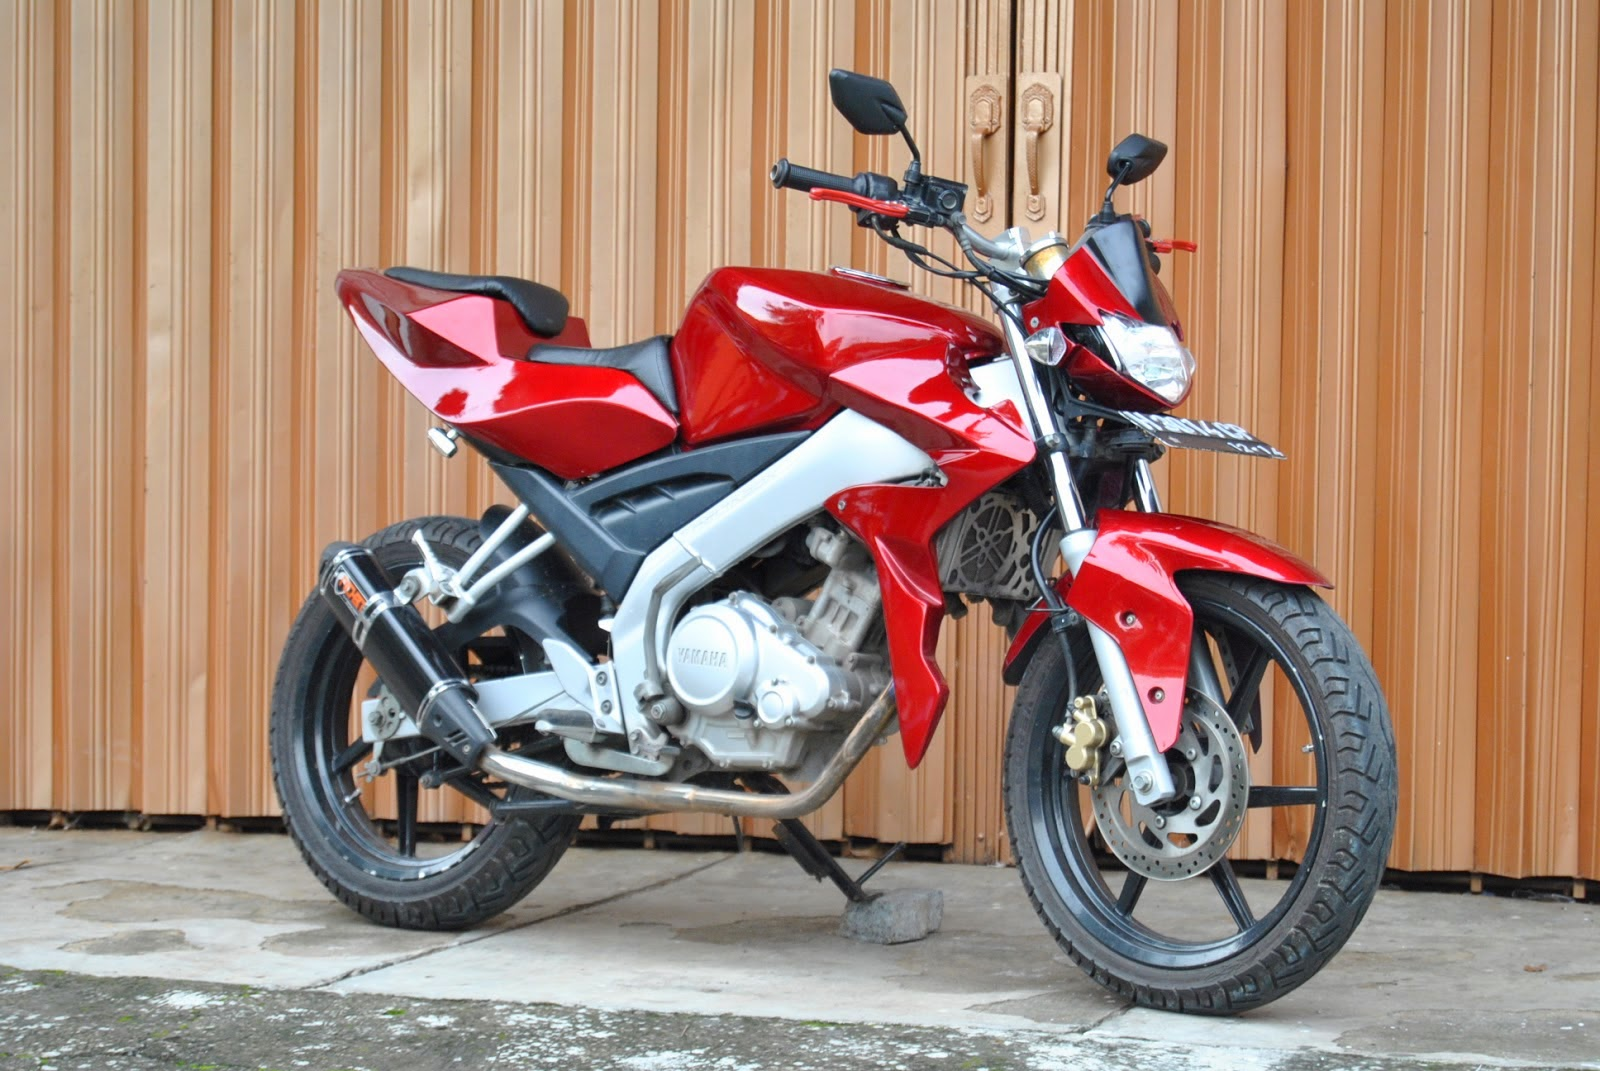 Modifikasi Minimalis Vario Techno 125